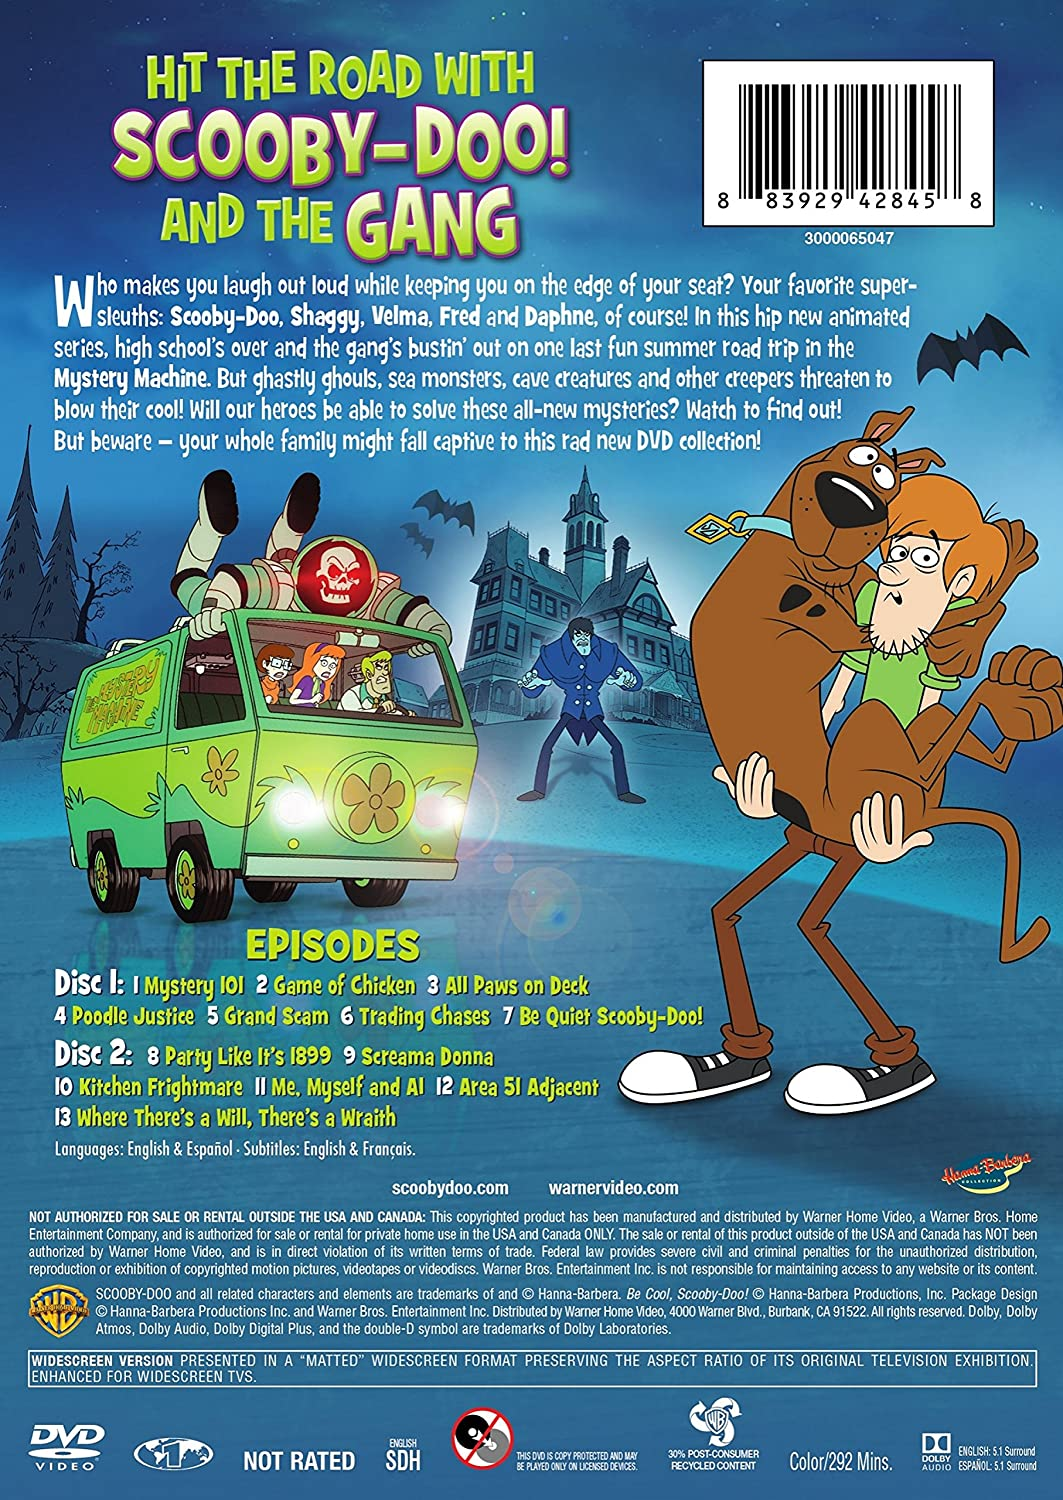 be cool scooby doo in hindi free download